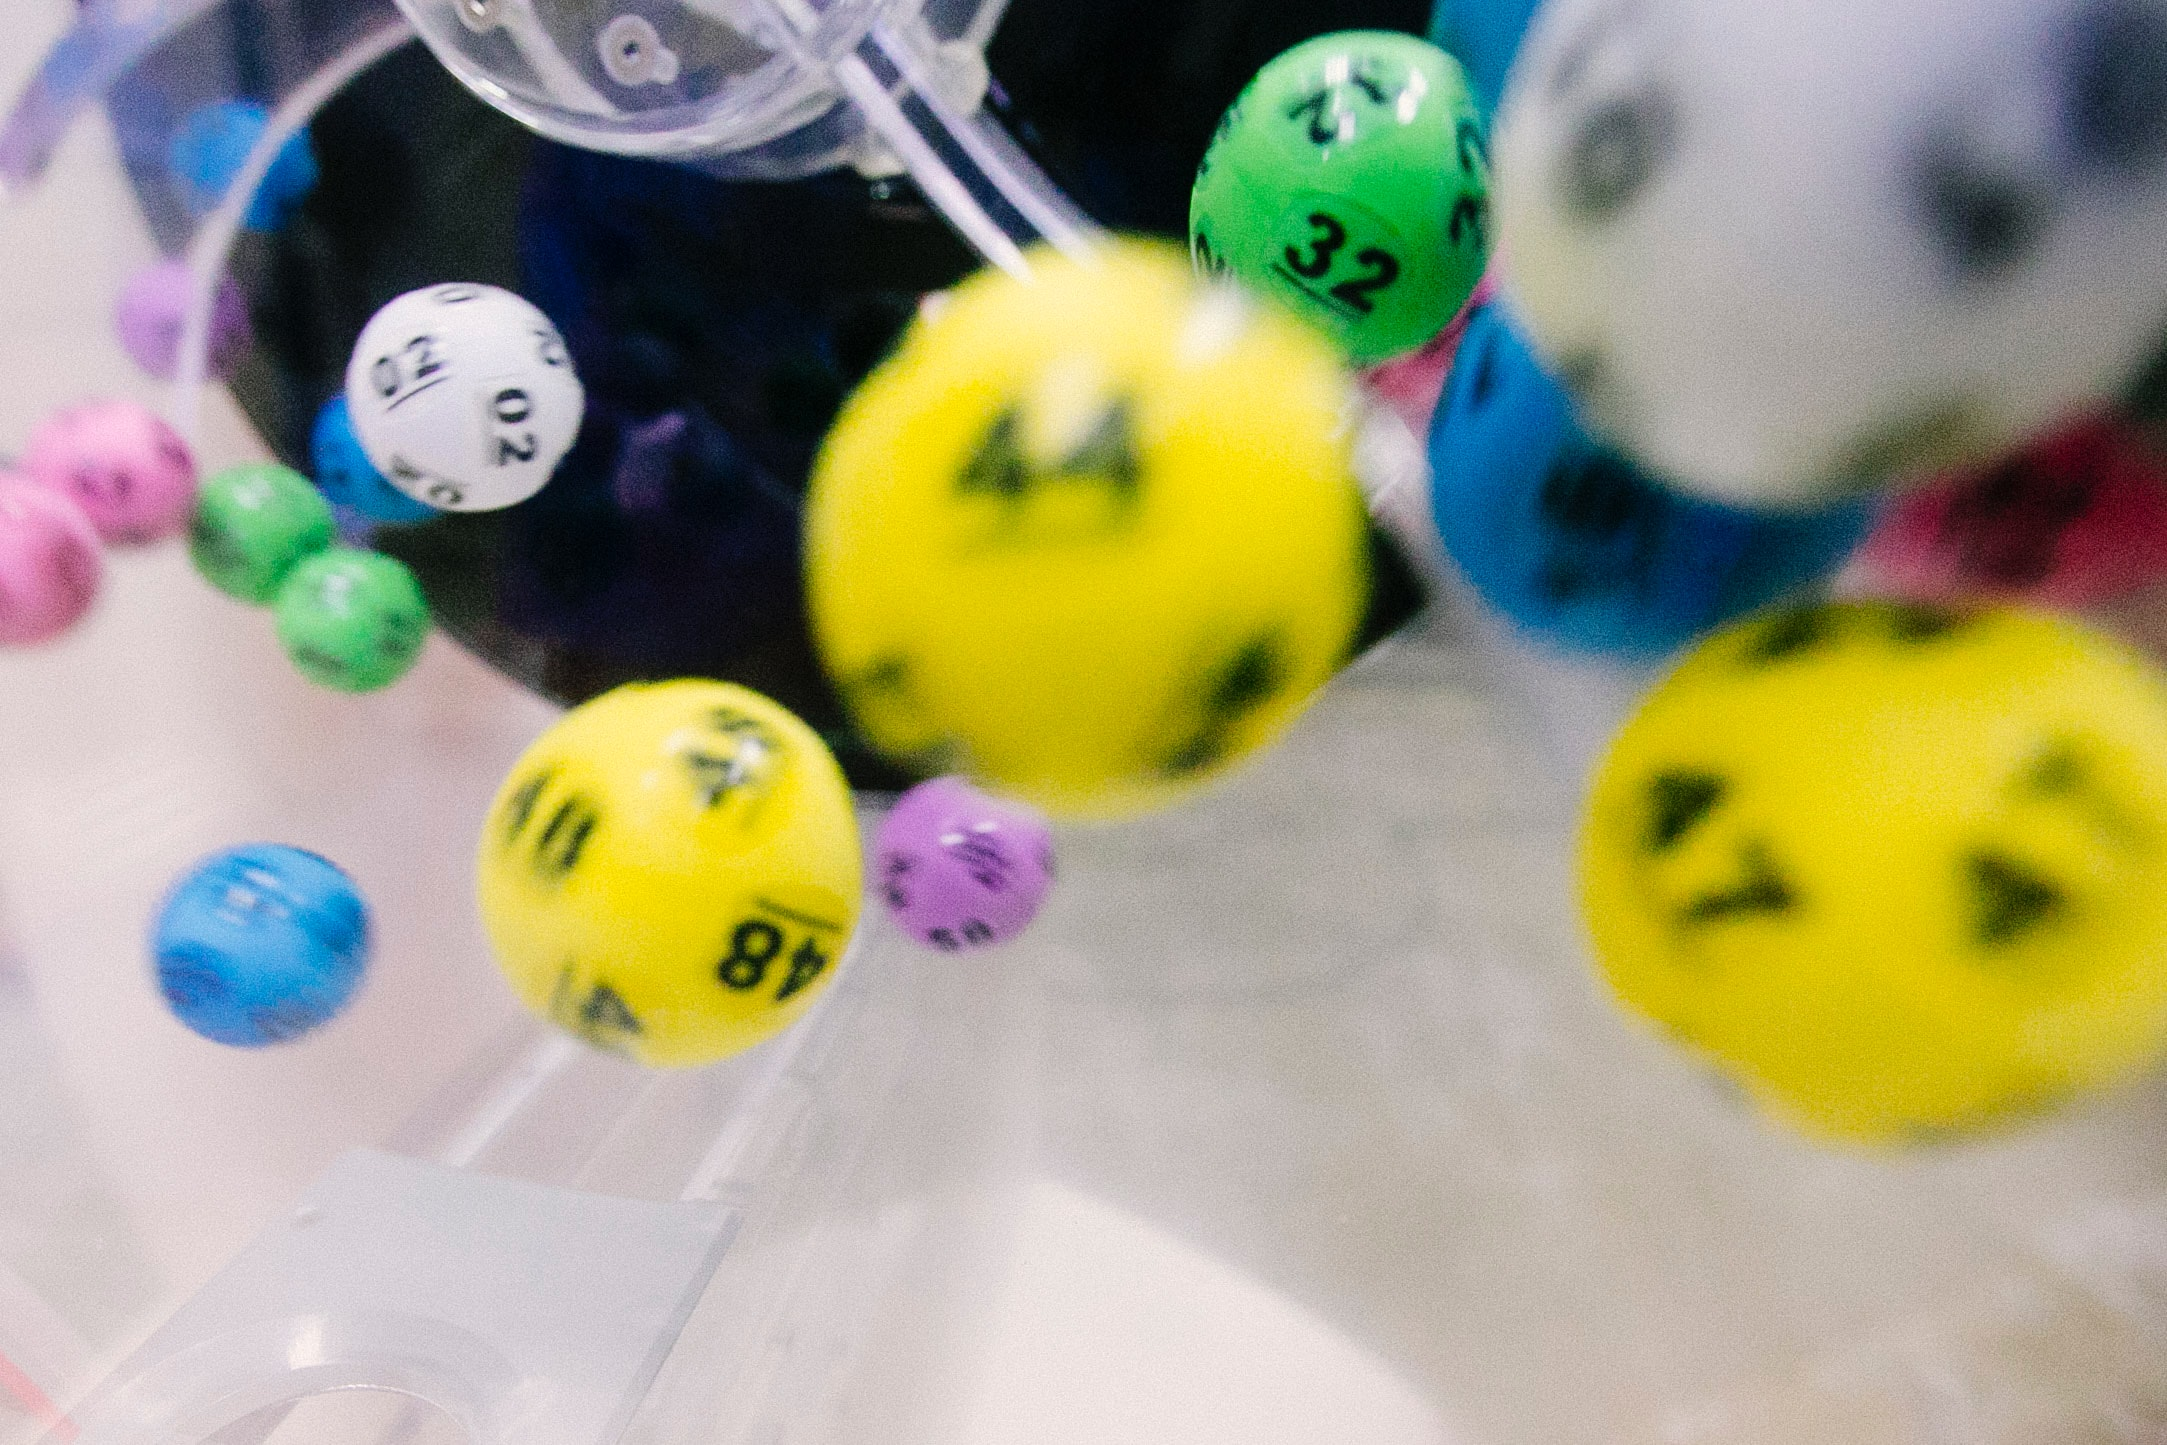 Understanding more about online gambling terms